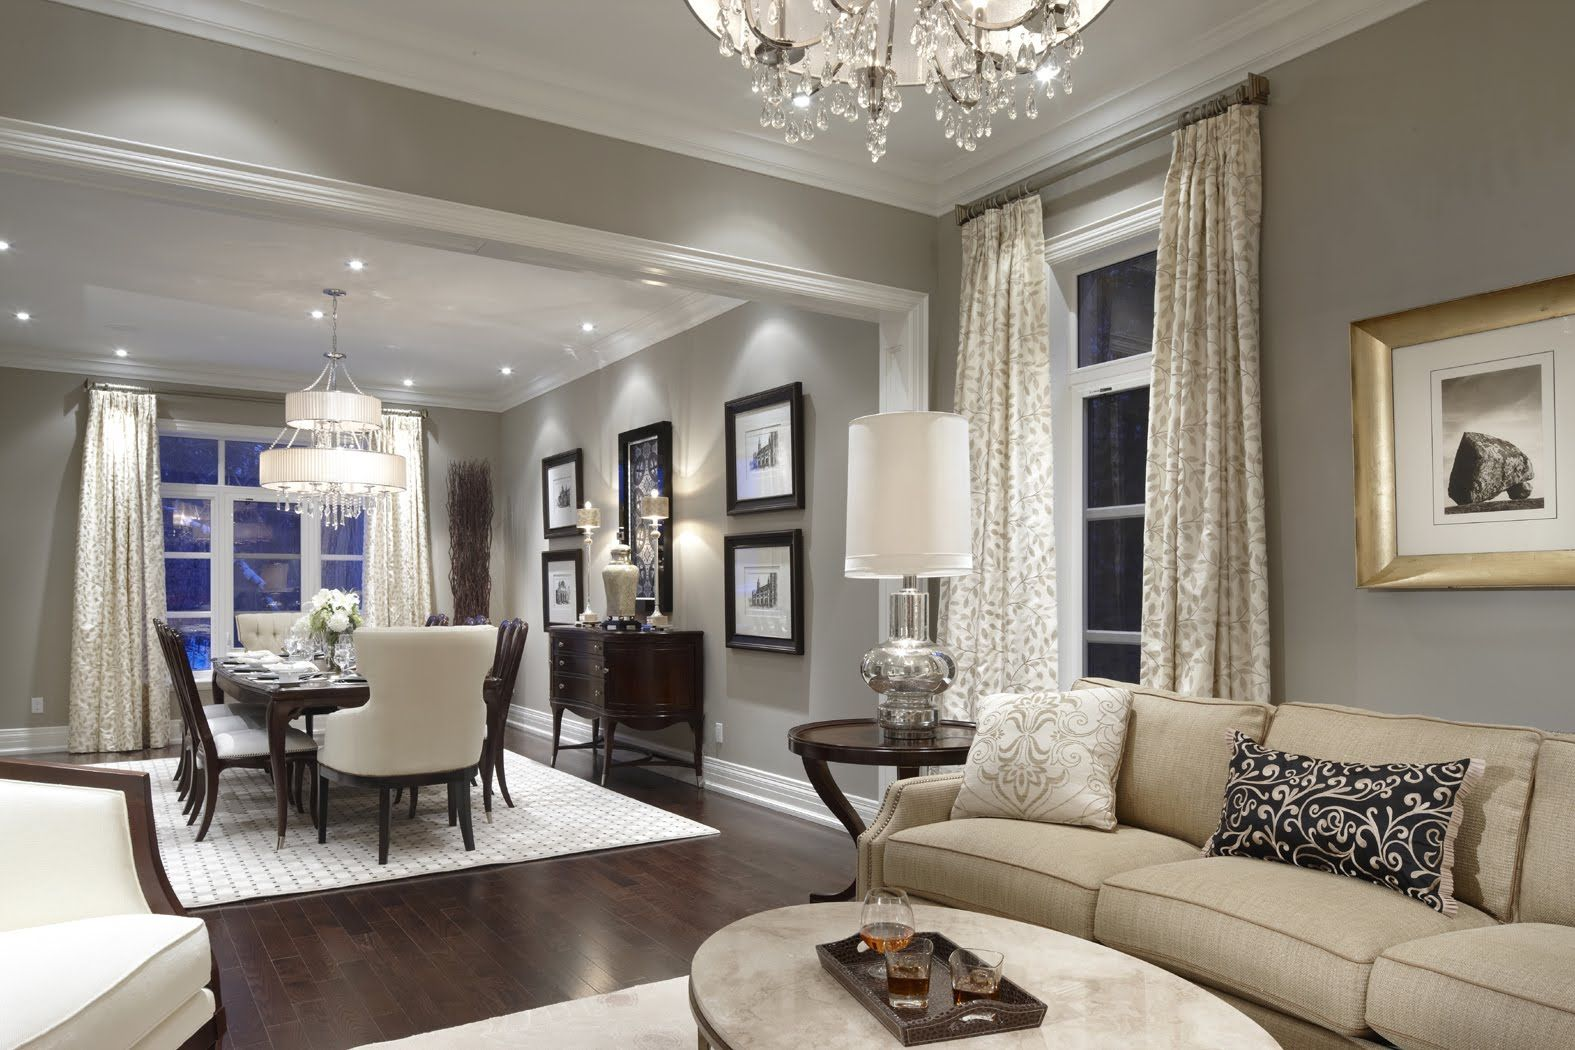 decorating ideas for living room with dark gray walls sofa and two accent chairs benjamin moore colors your decor livingroom a traditional medium tone hardwood floors